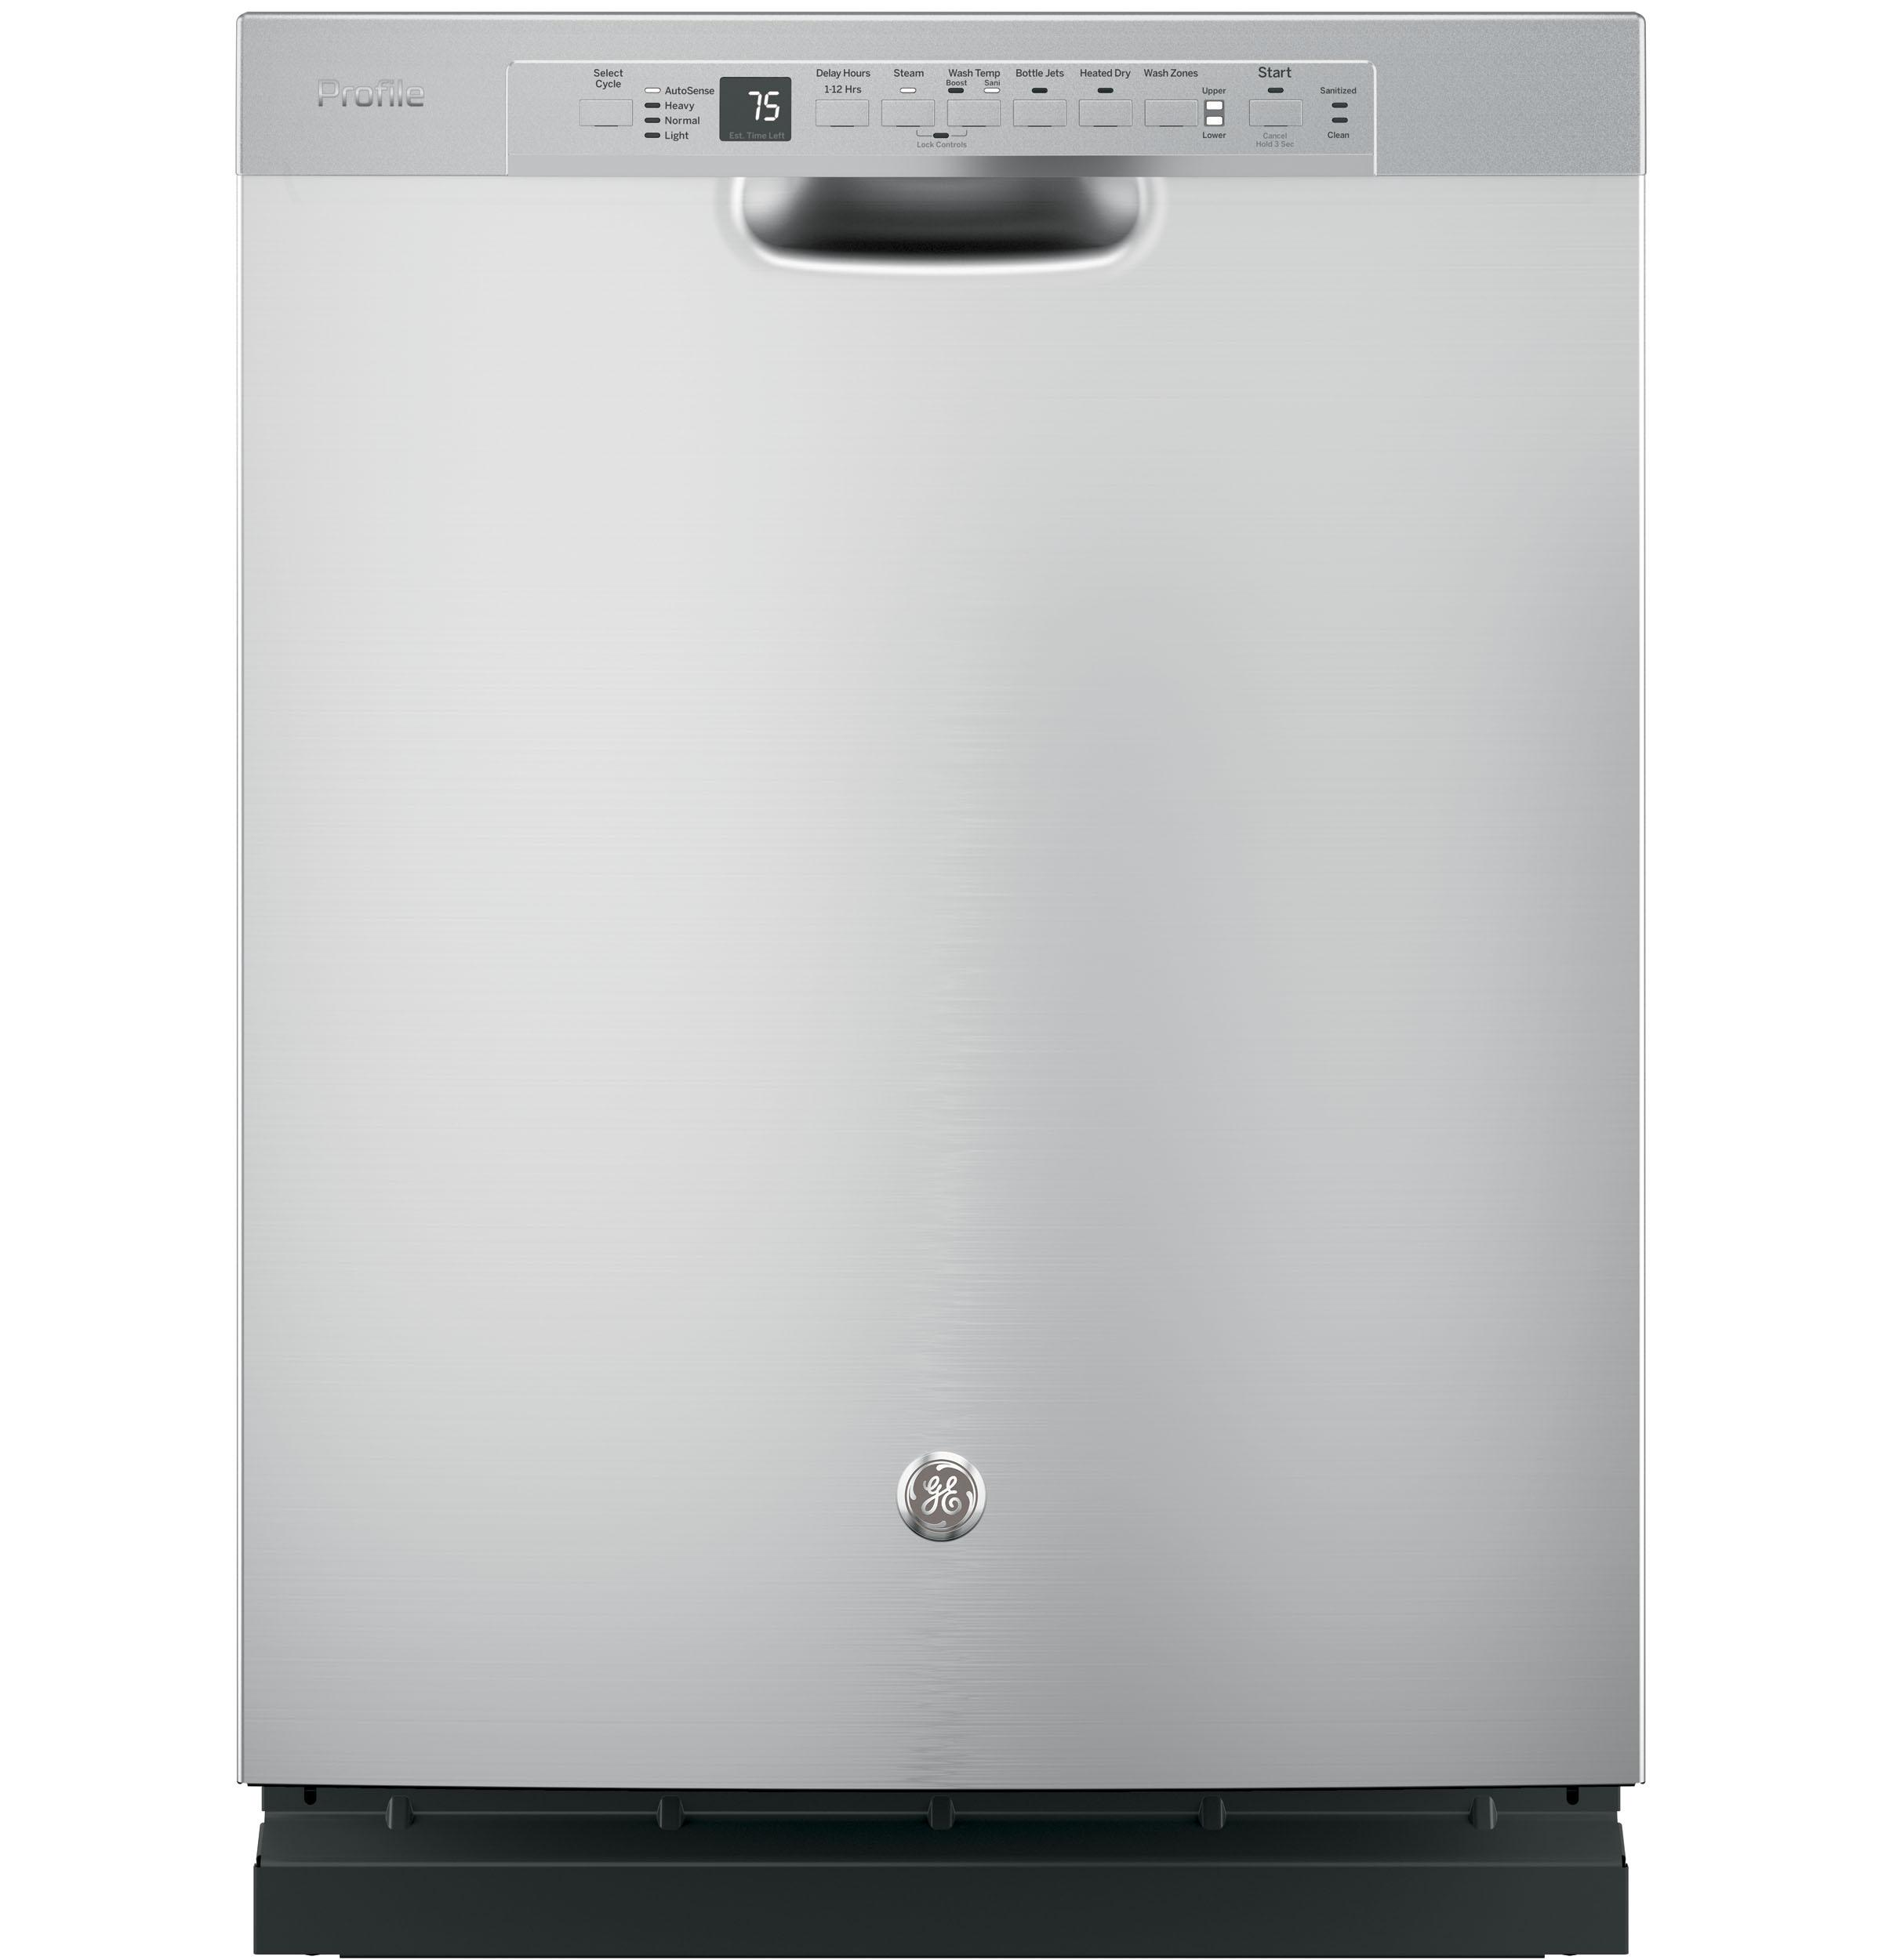 Ge profile stainless steel interior dishwasher with - Dishwasher stainless steel interior ...